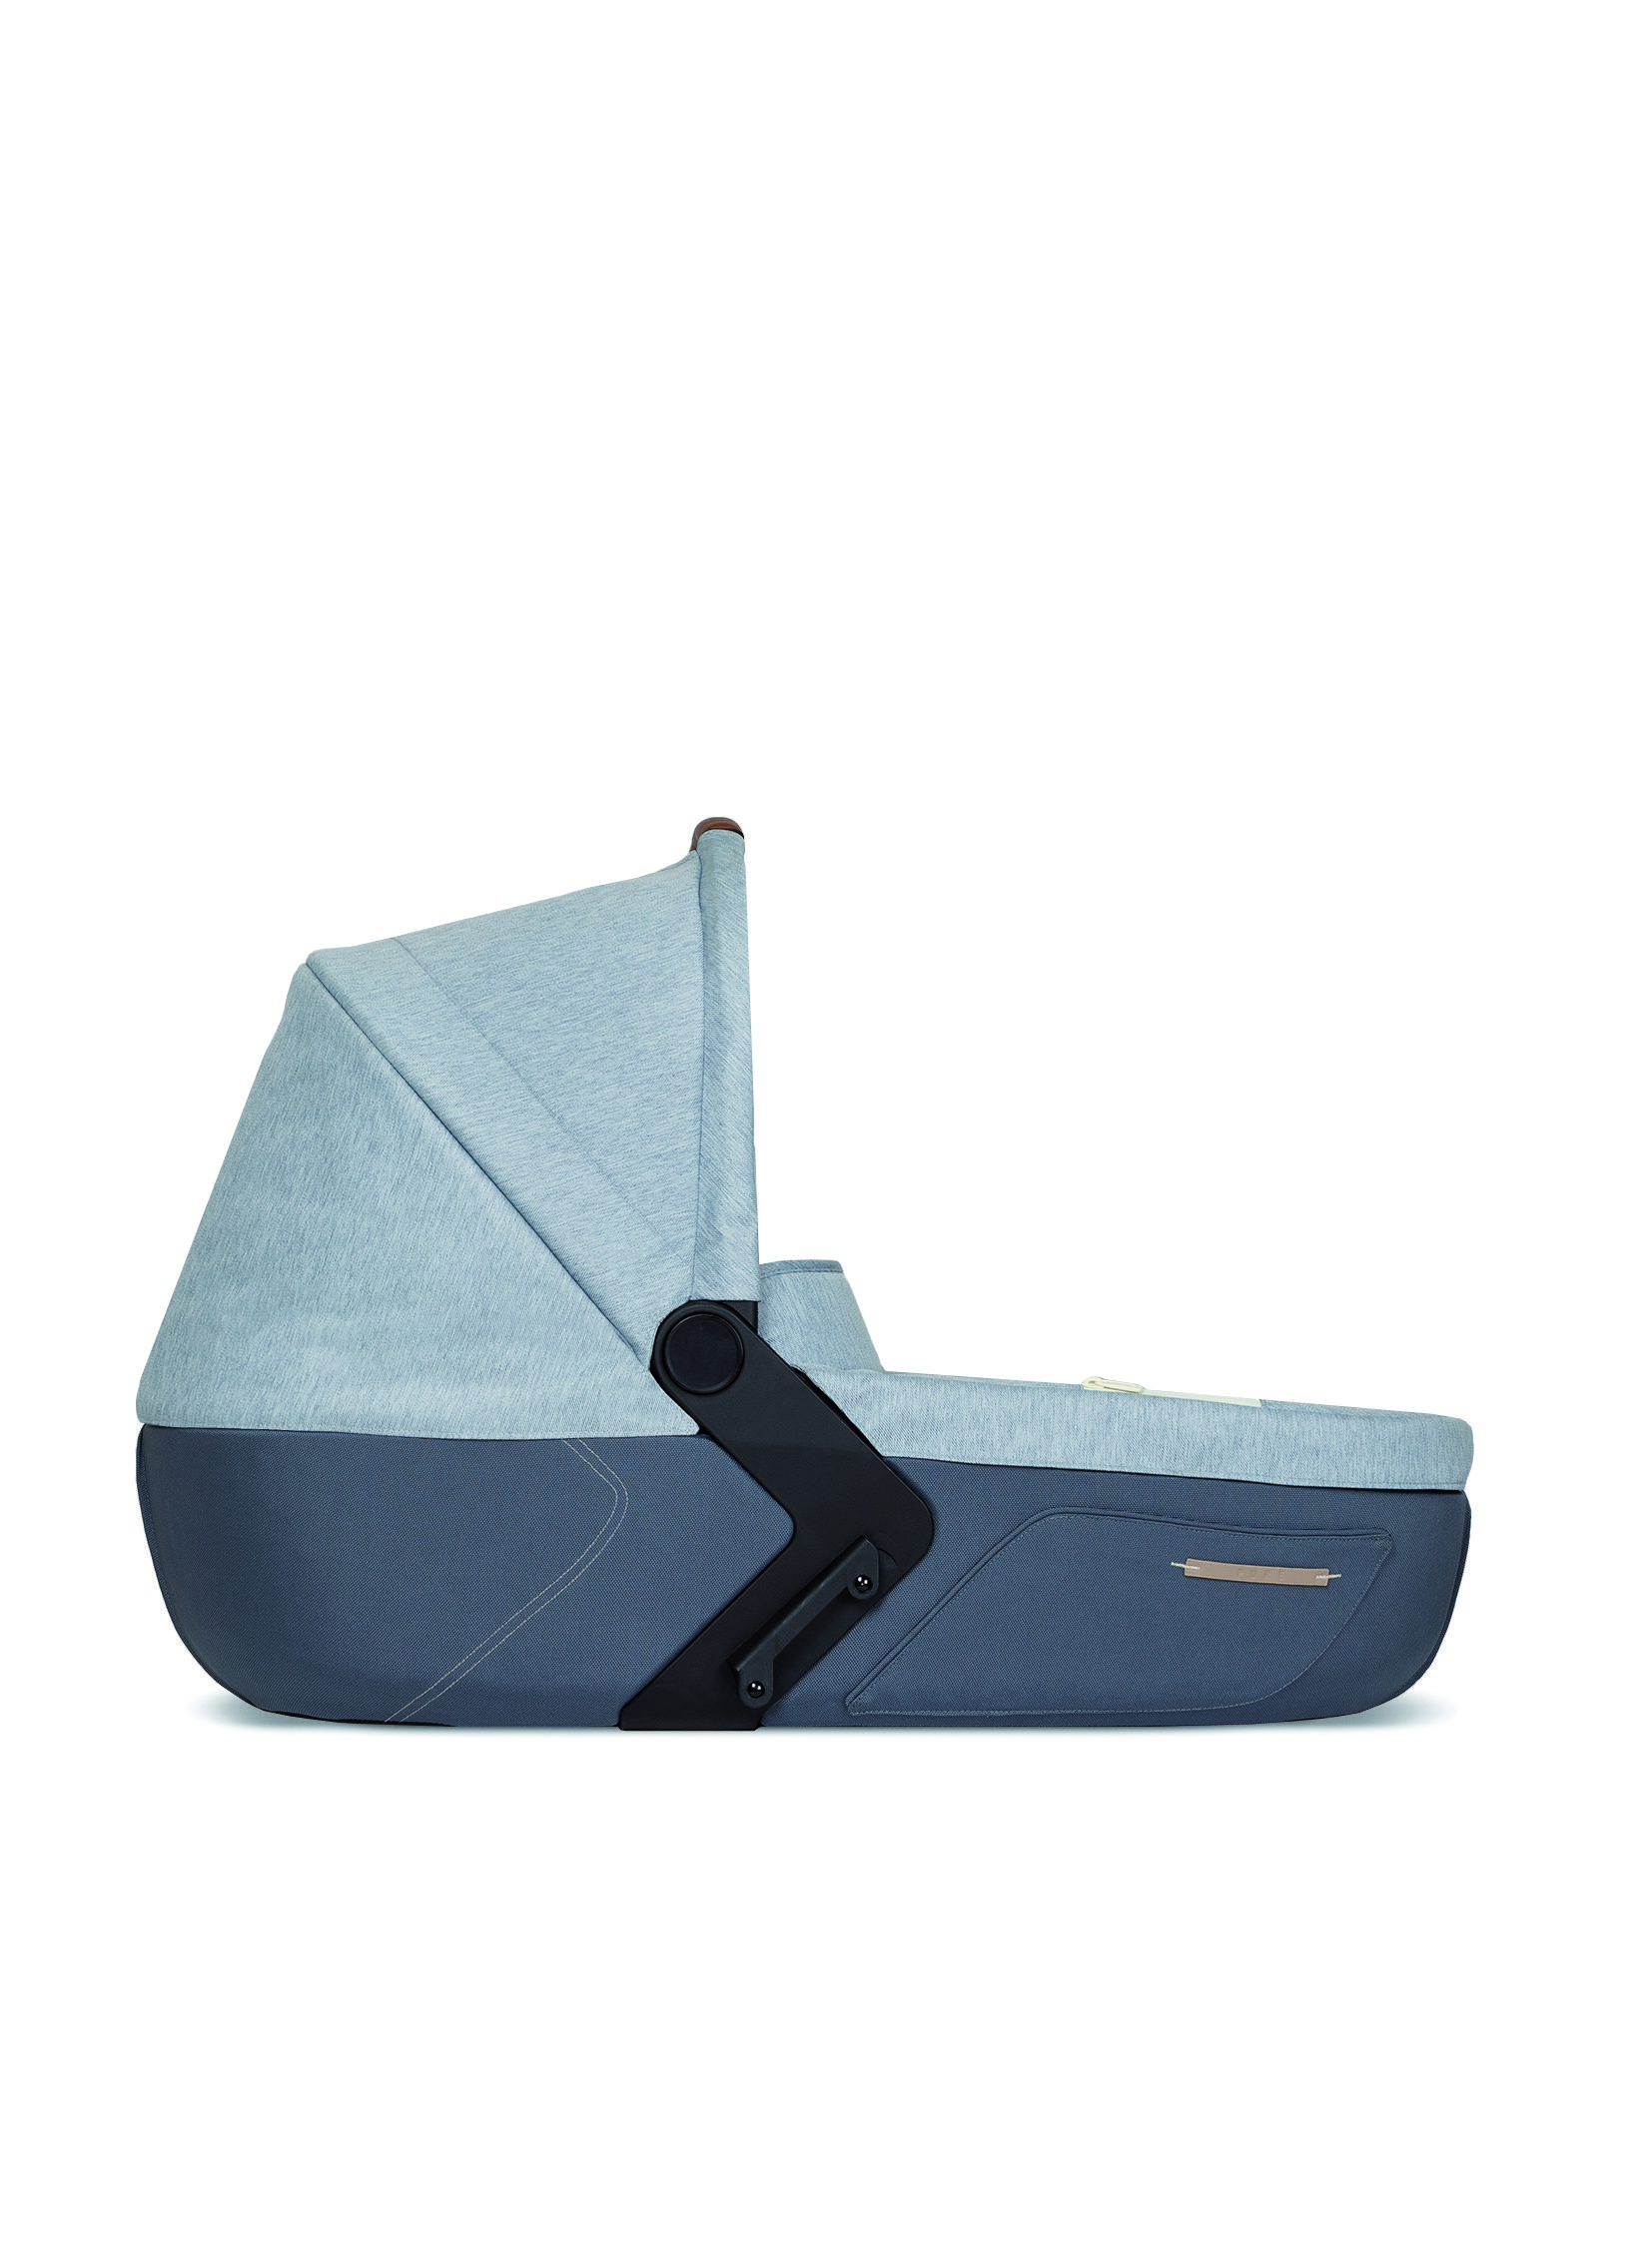 Mutsy i2 Carrycot Pure Cloud  - Mutsy